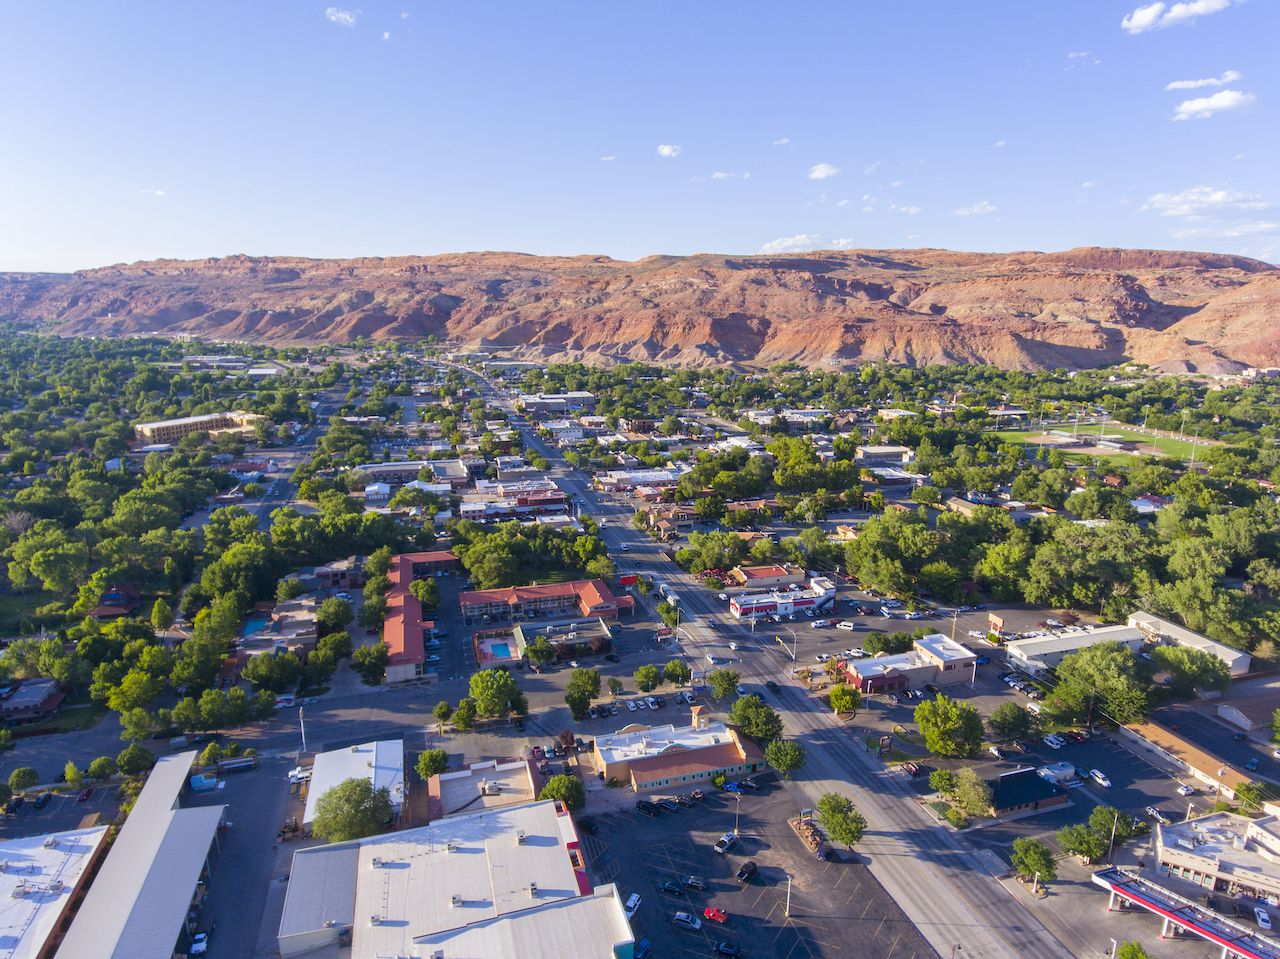 Moab city center and historic buildings aerial view in summer, Utah, USA., utah canyon country